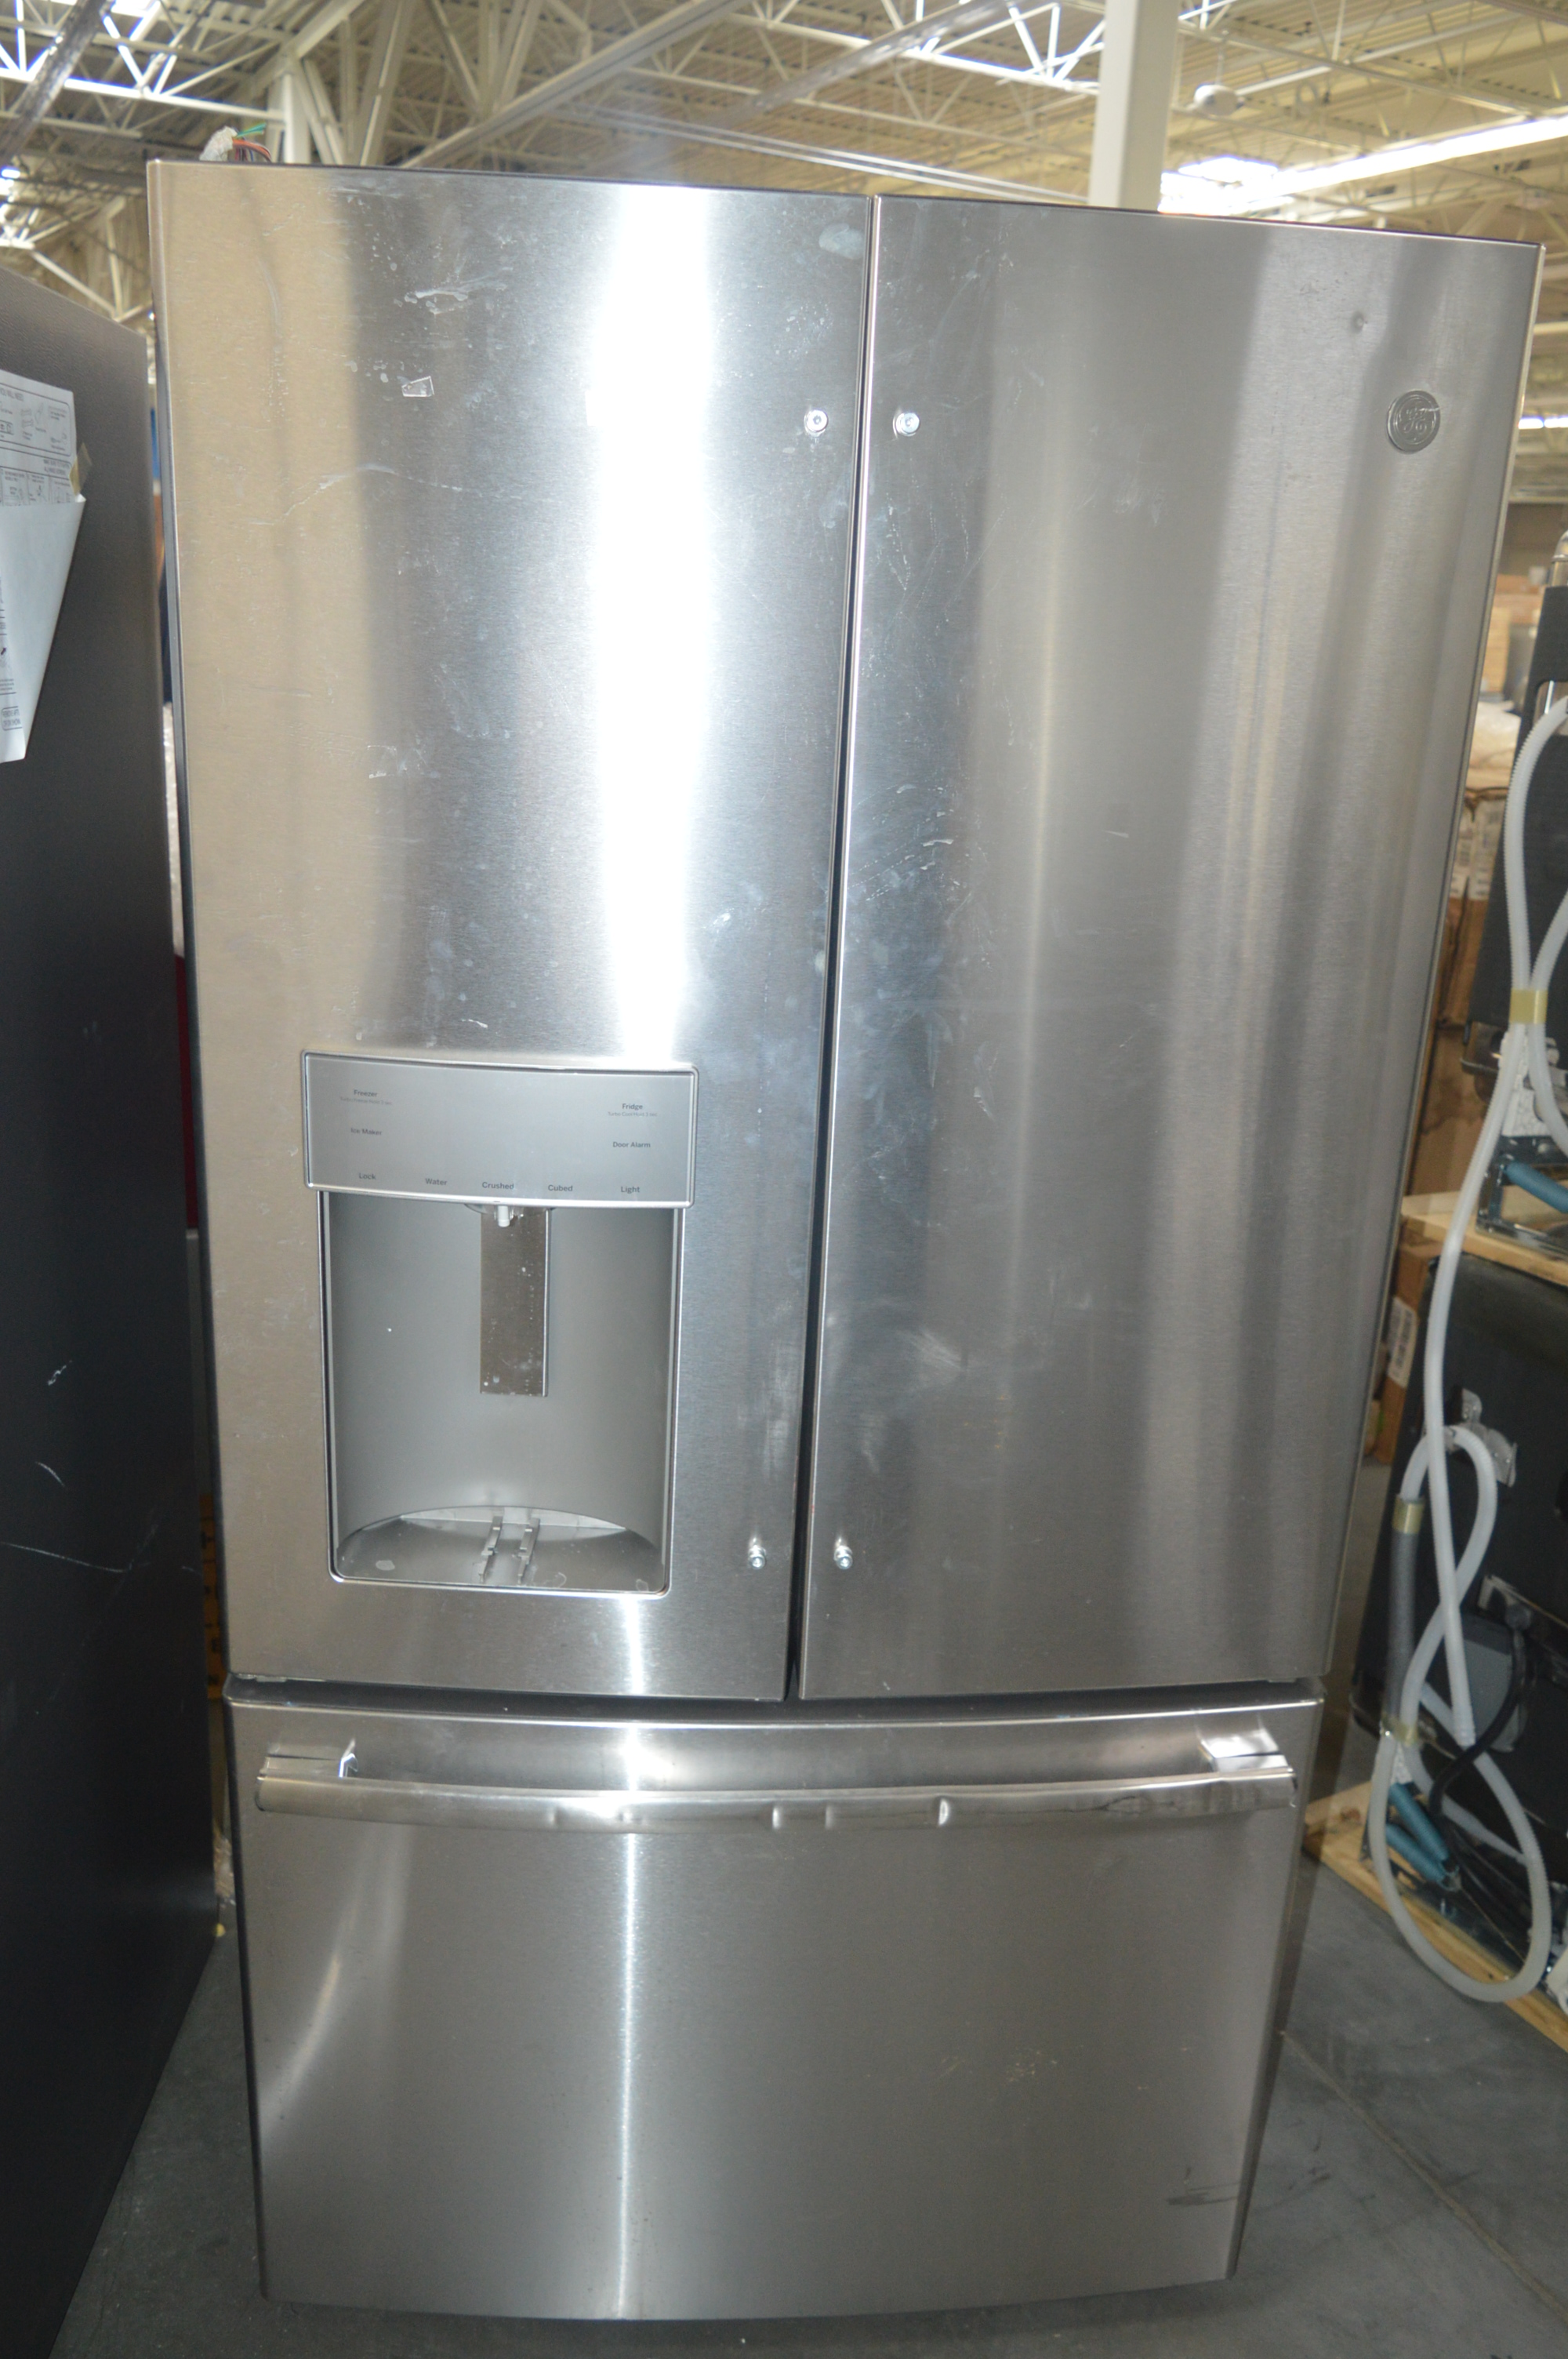 GE GFE28GSKSS French Door Refrigerator Stainless #27657